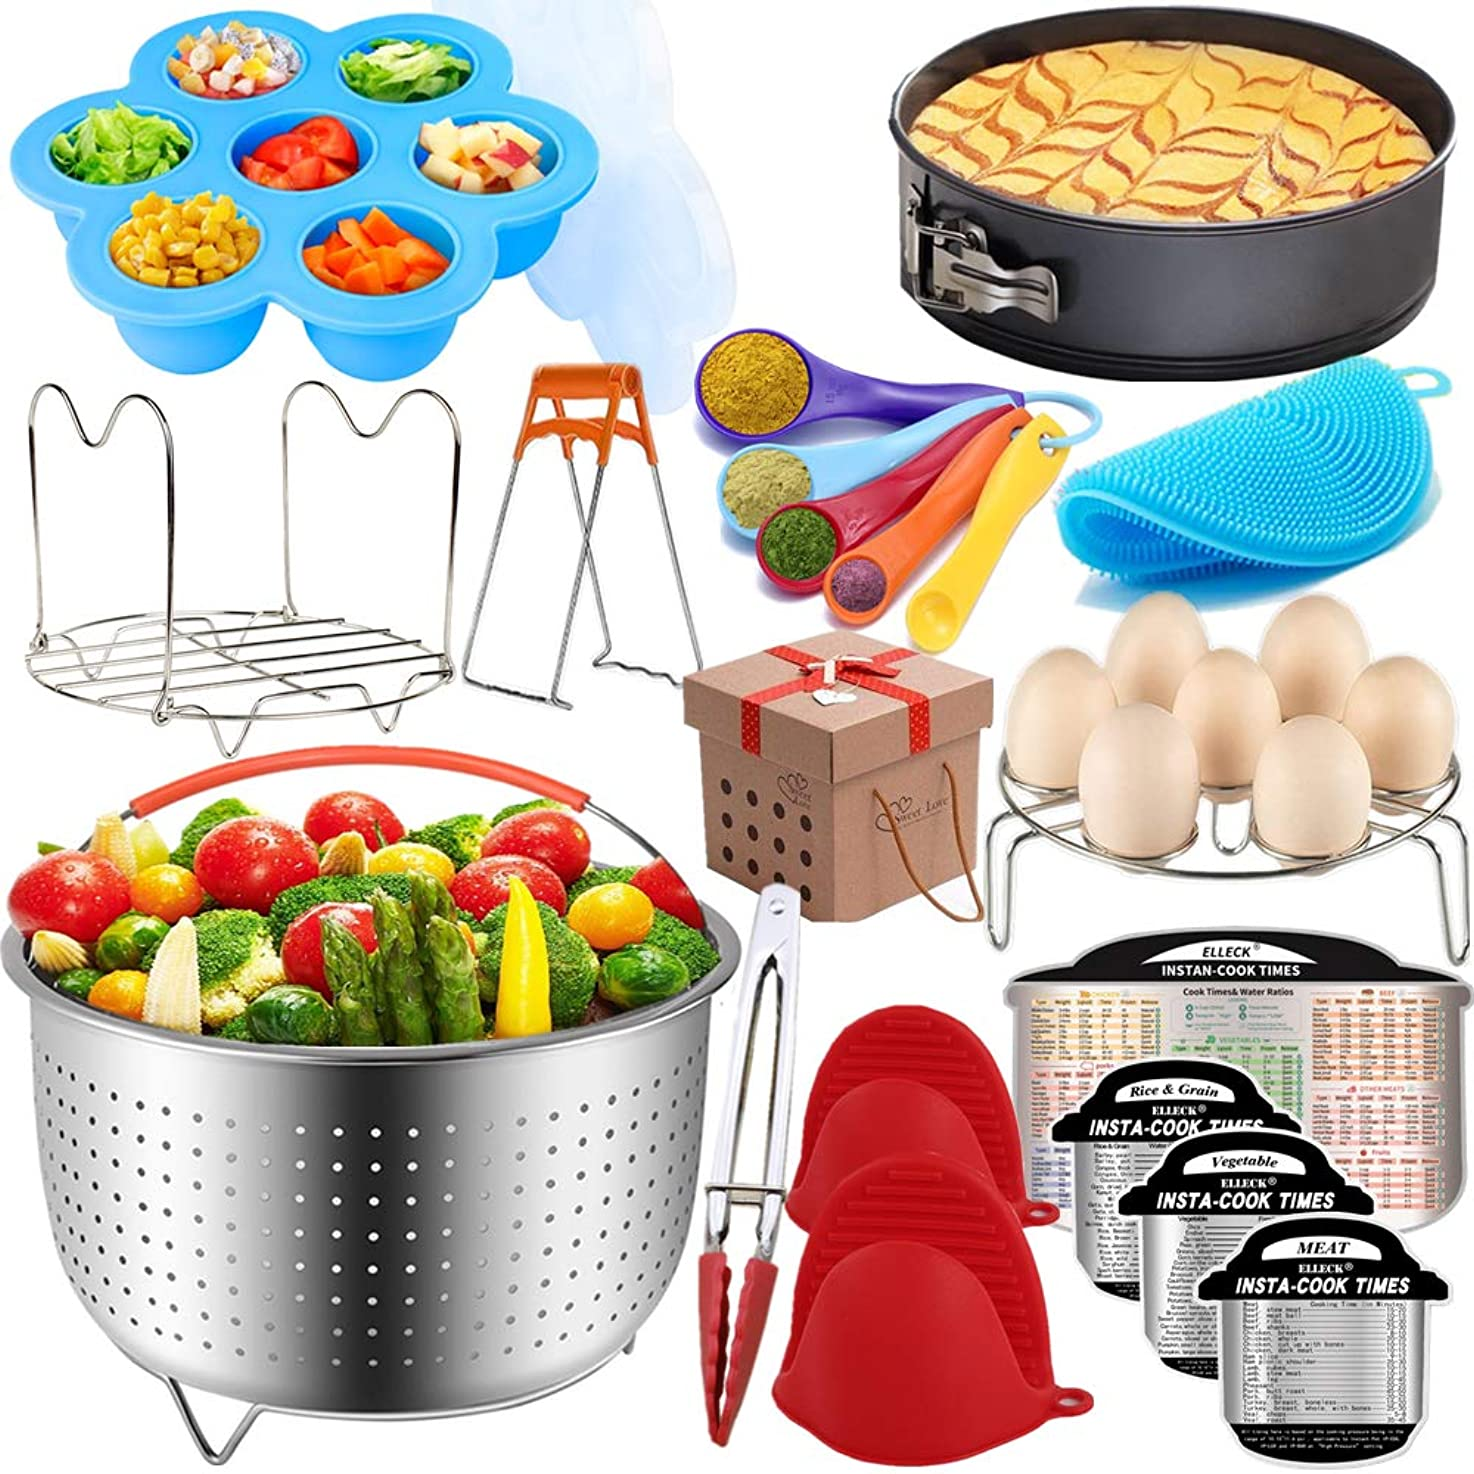 Pressure Cooker Accessories Set Compatible with Instant Pot 5,6,8 QT, Steamer Basket, Springform Pan, Egg Rack, Egg Bites Mold, Cheat Sheet Magnets, Bowl Clip, Tong and Mitts& Scrub/12pcs qpaugeccguewa1